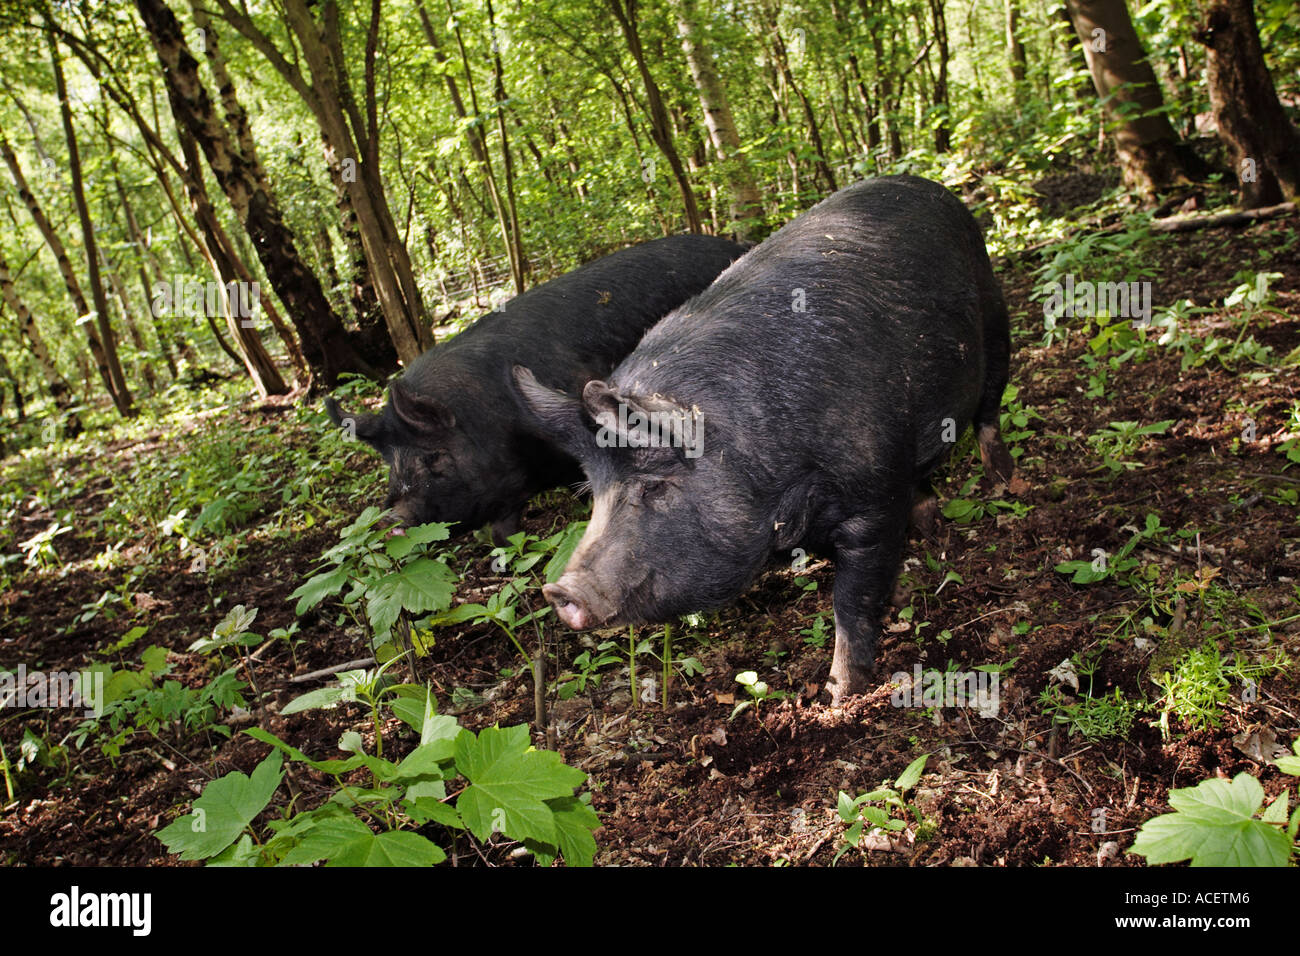 Pair of Berkshire breed pigs roaming in a woodland enclosure Yorkshire UK - Stock Image